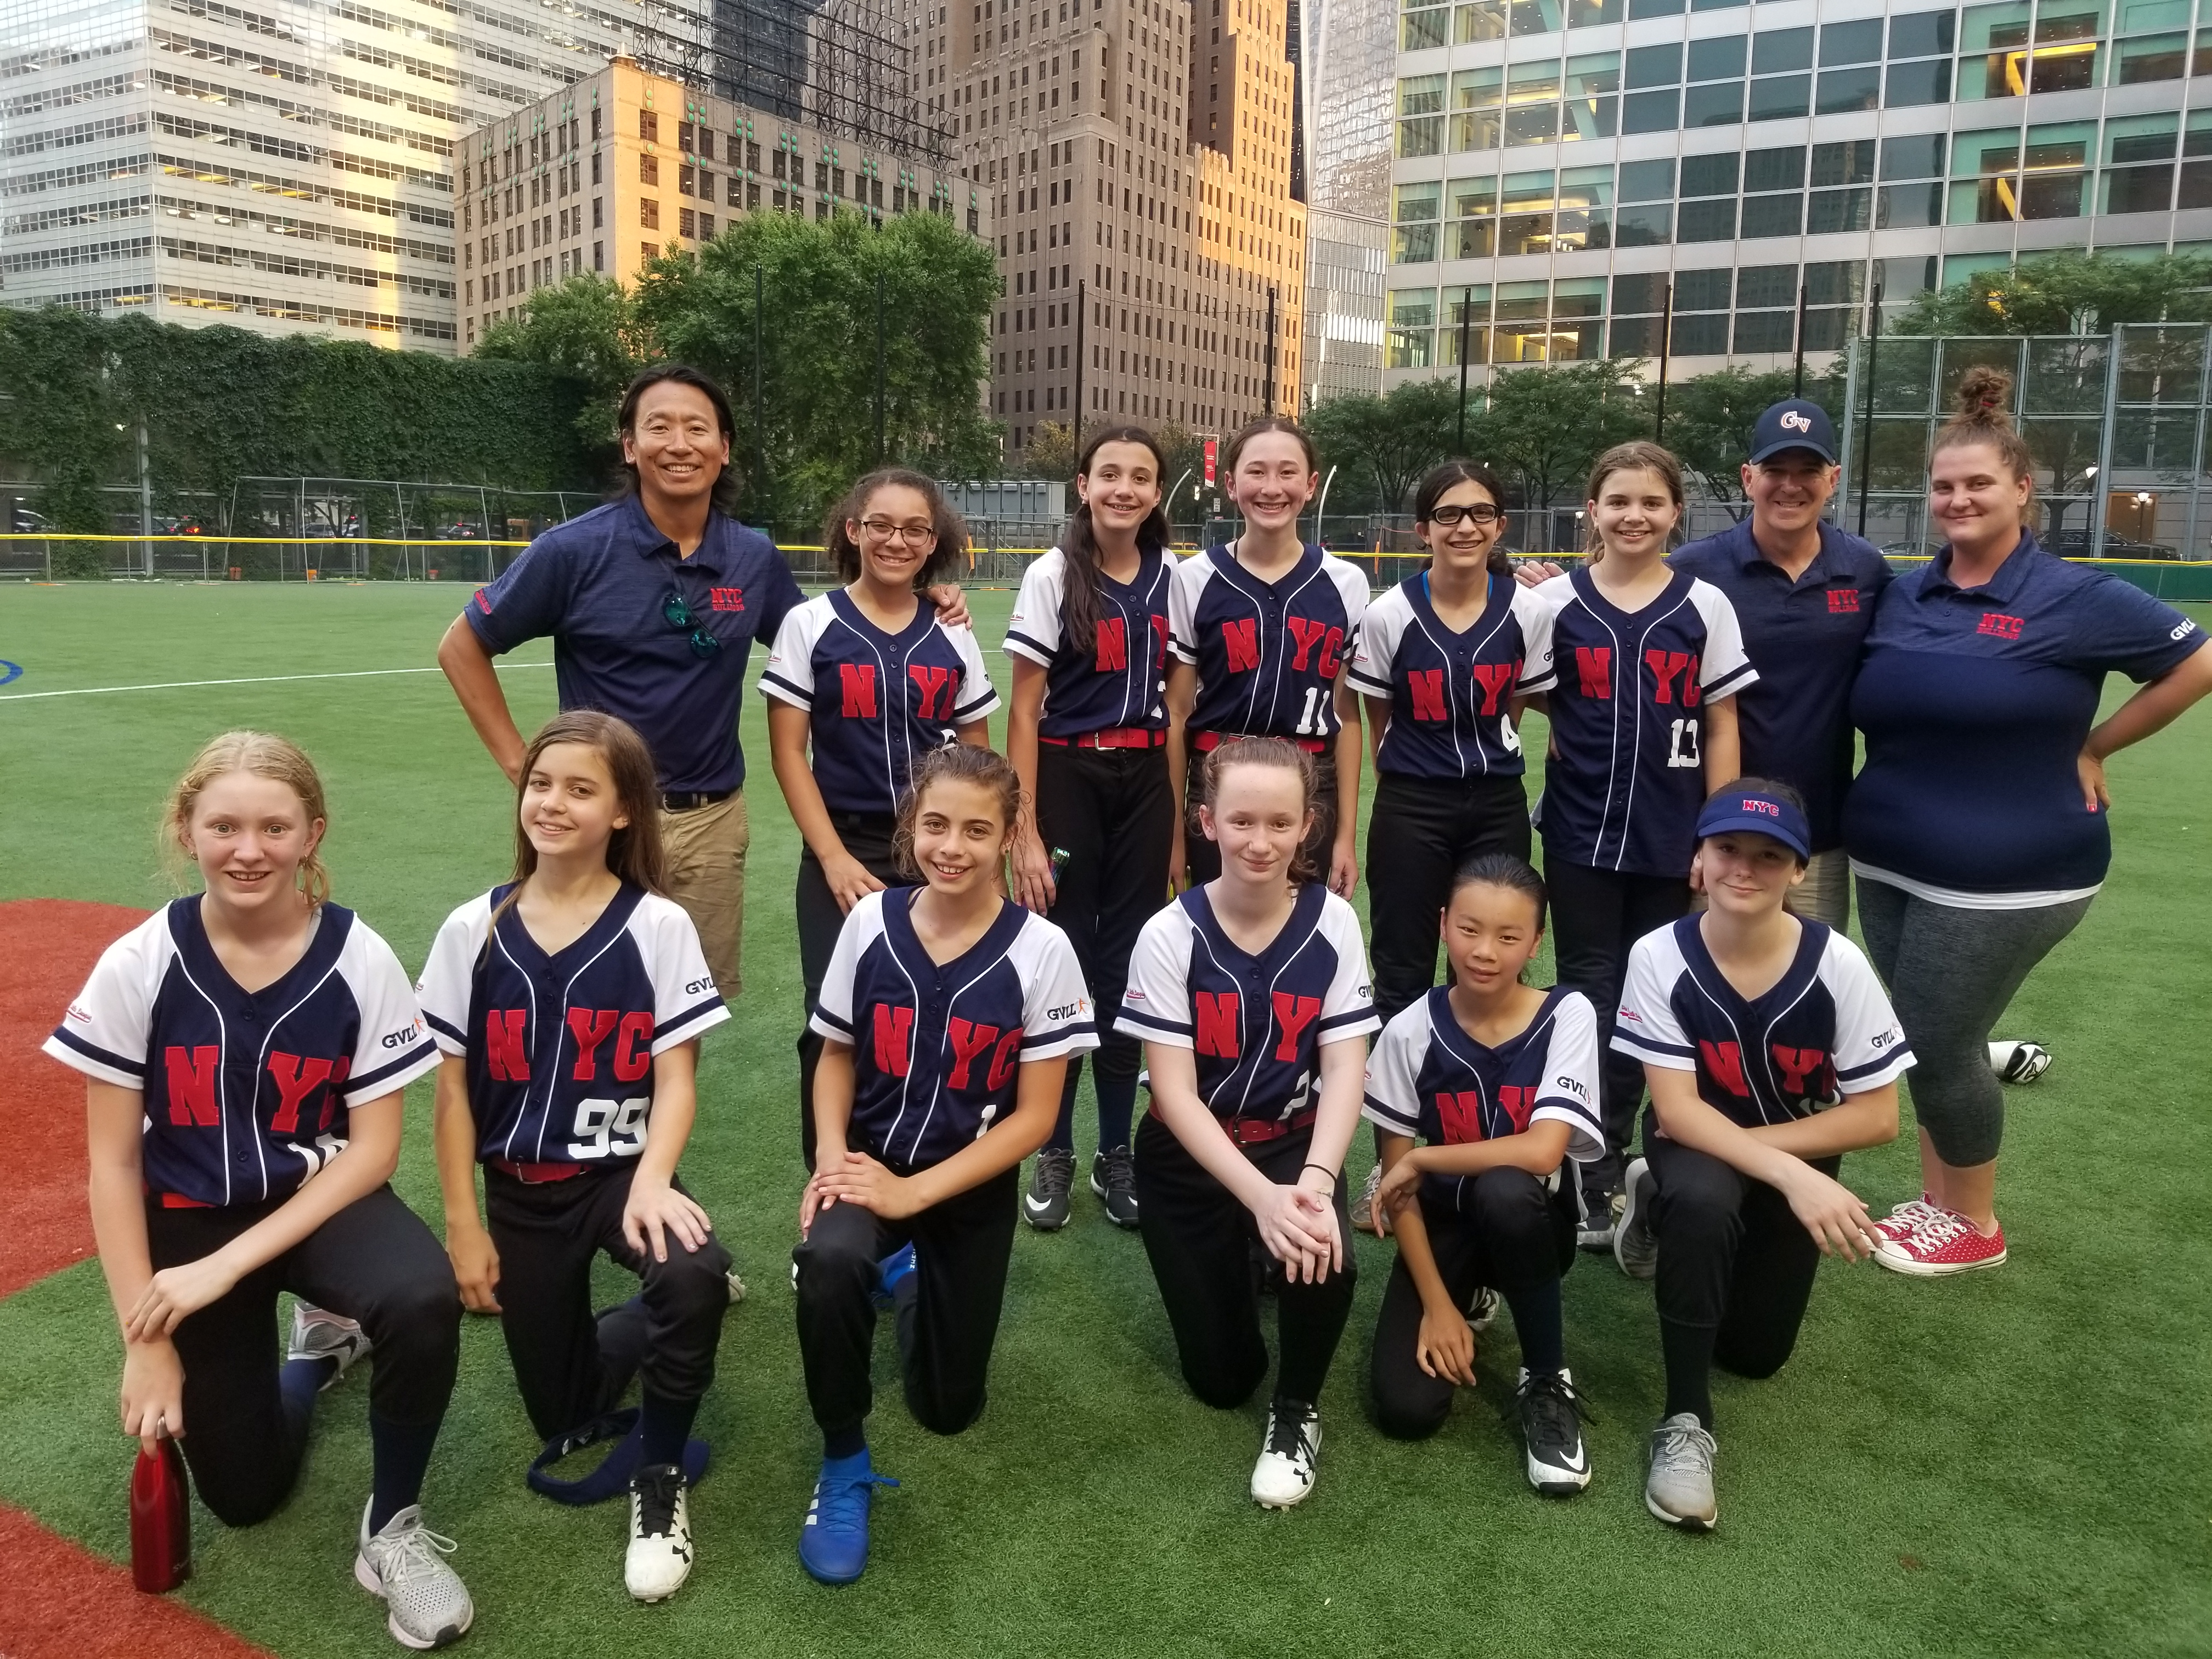 West Side Little League - New York City: Home Page